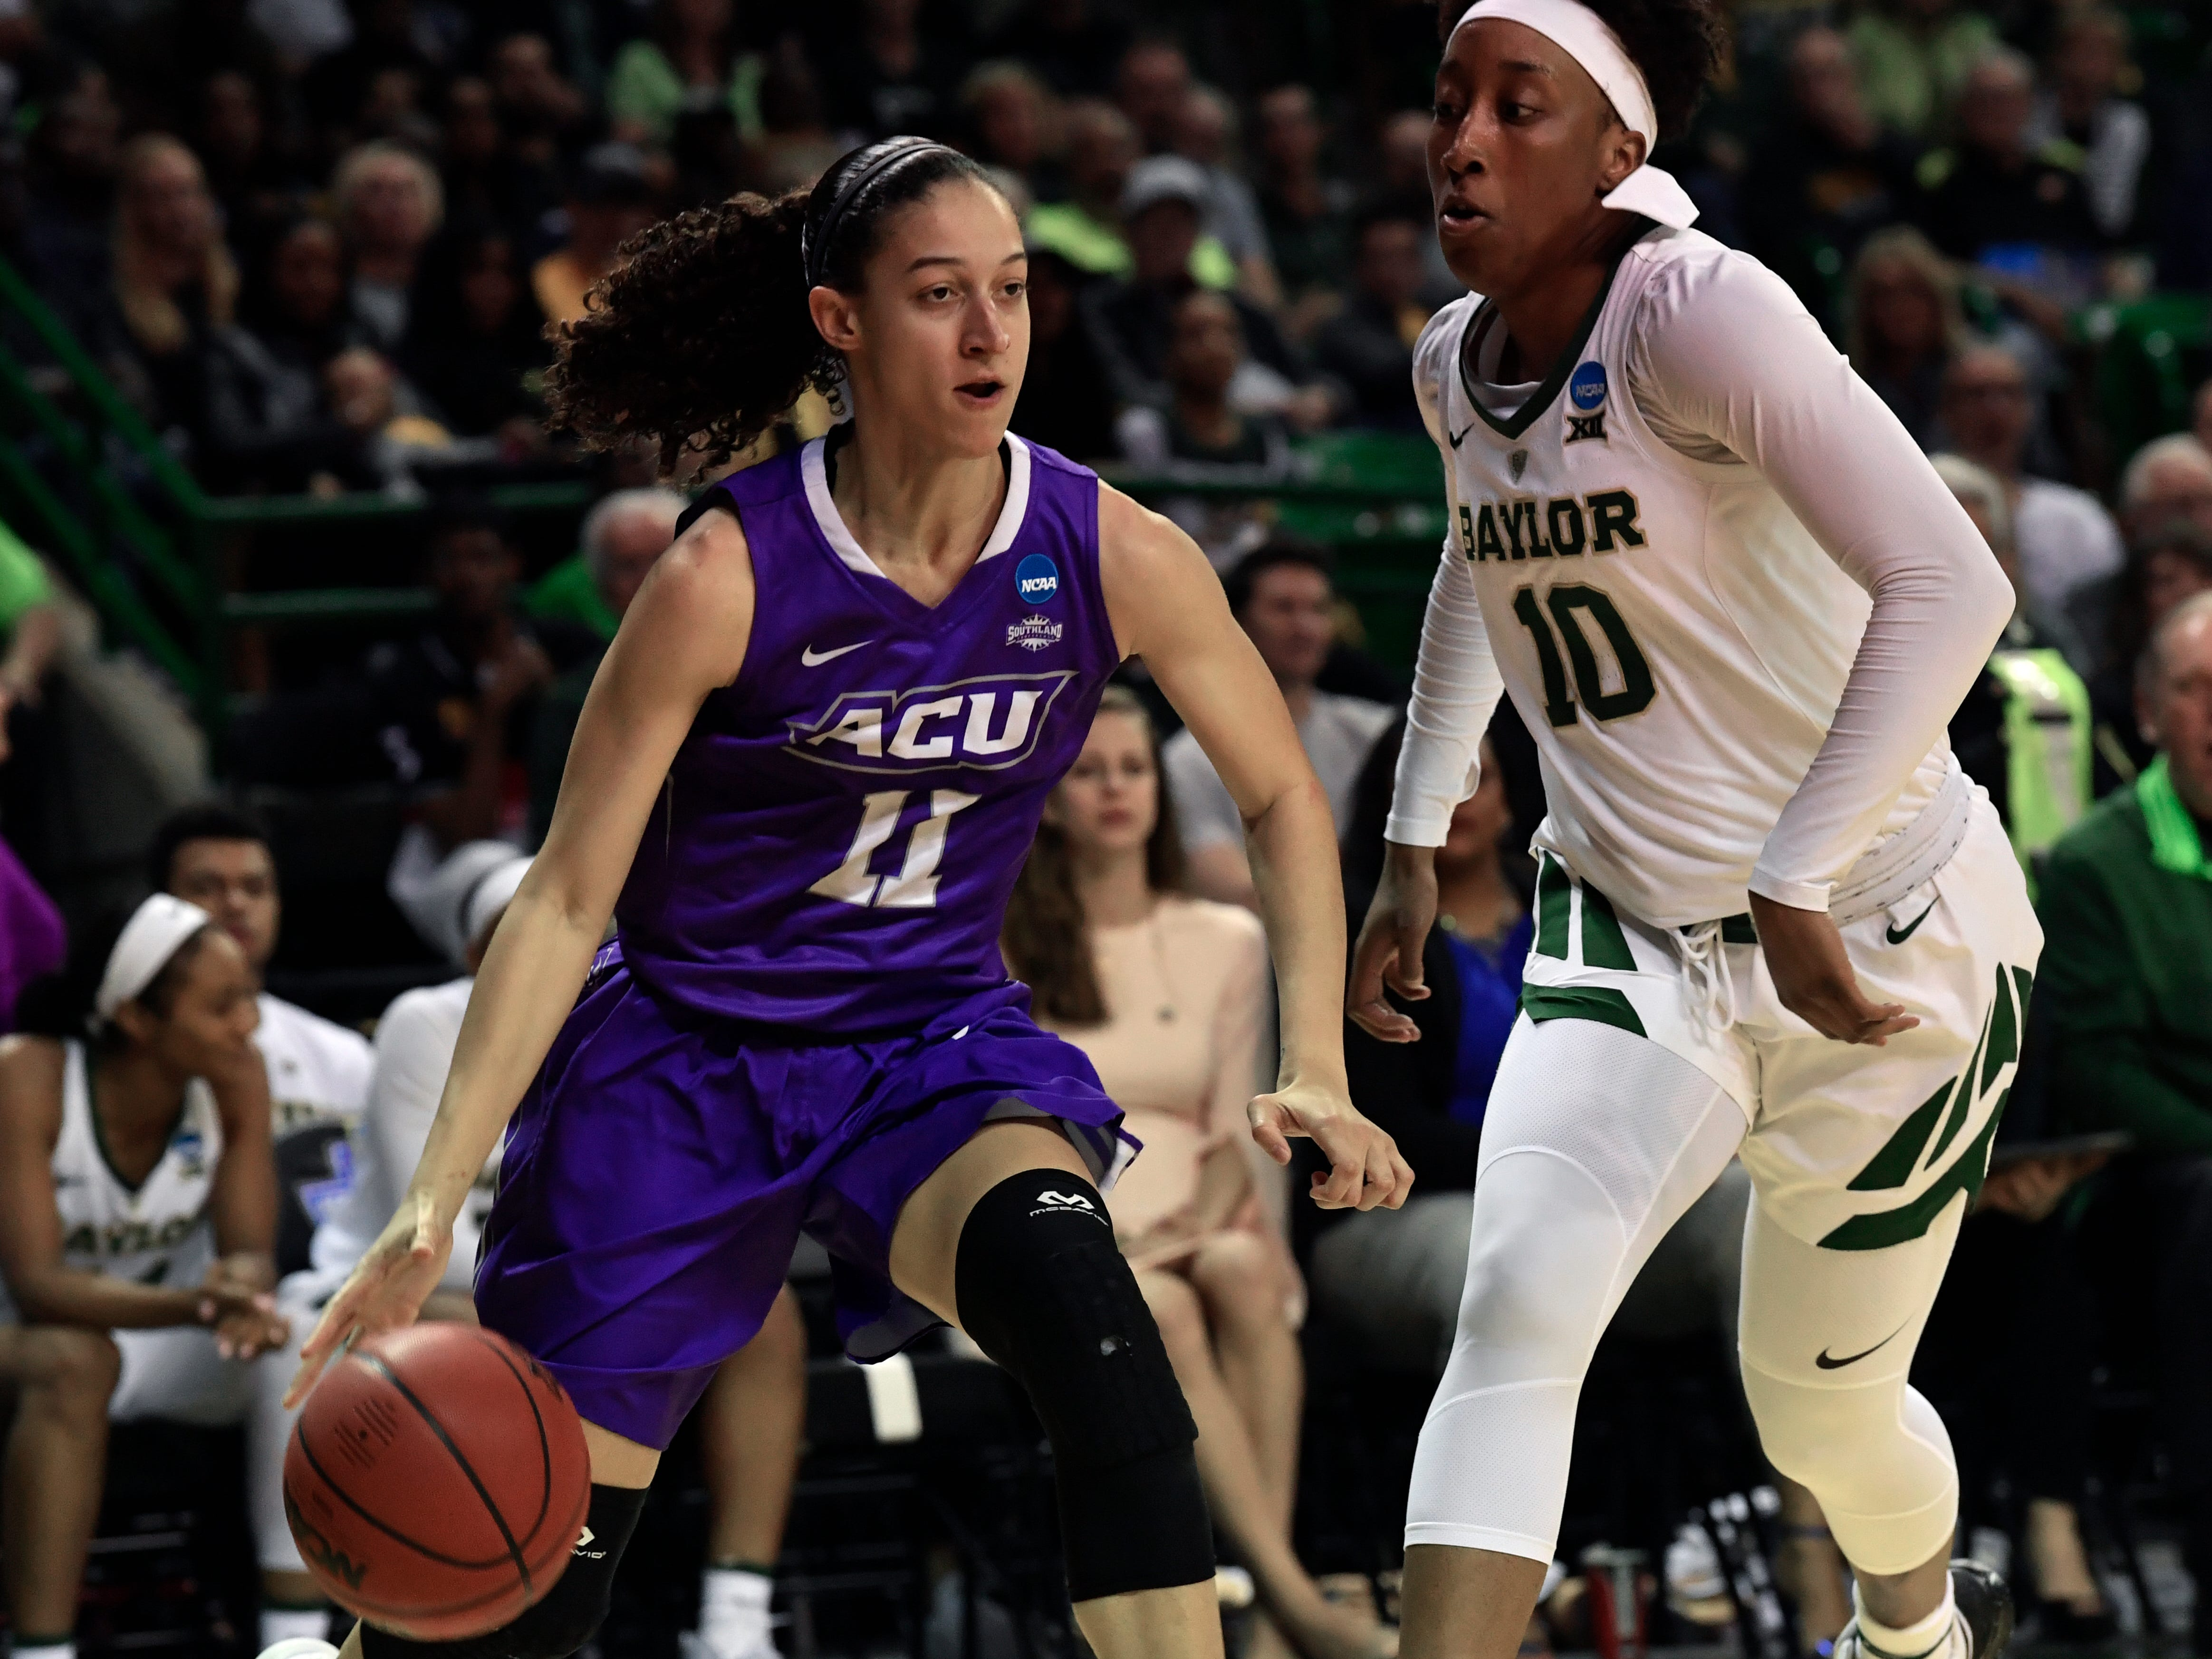 ACU guard Sara Williamson drives past Baylor forward Aquira DeCosta to the net during Saturday's NCAA Tournament women's round 1 basketball game March 23, 2019. Baylor defeated Abilene Christian University, 95-38.